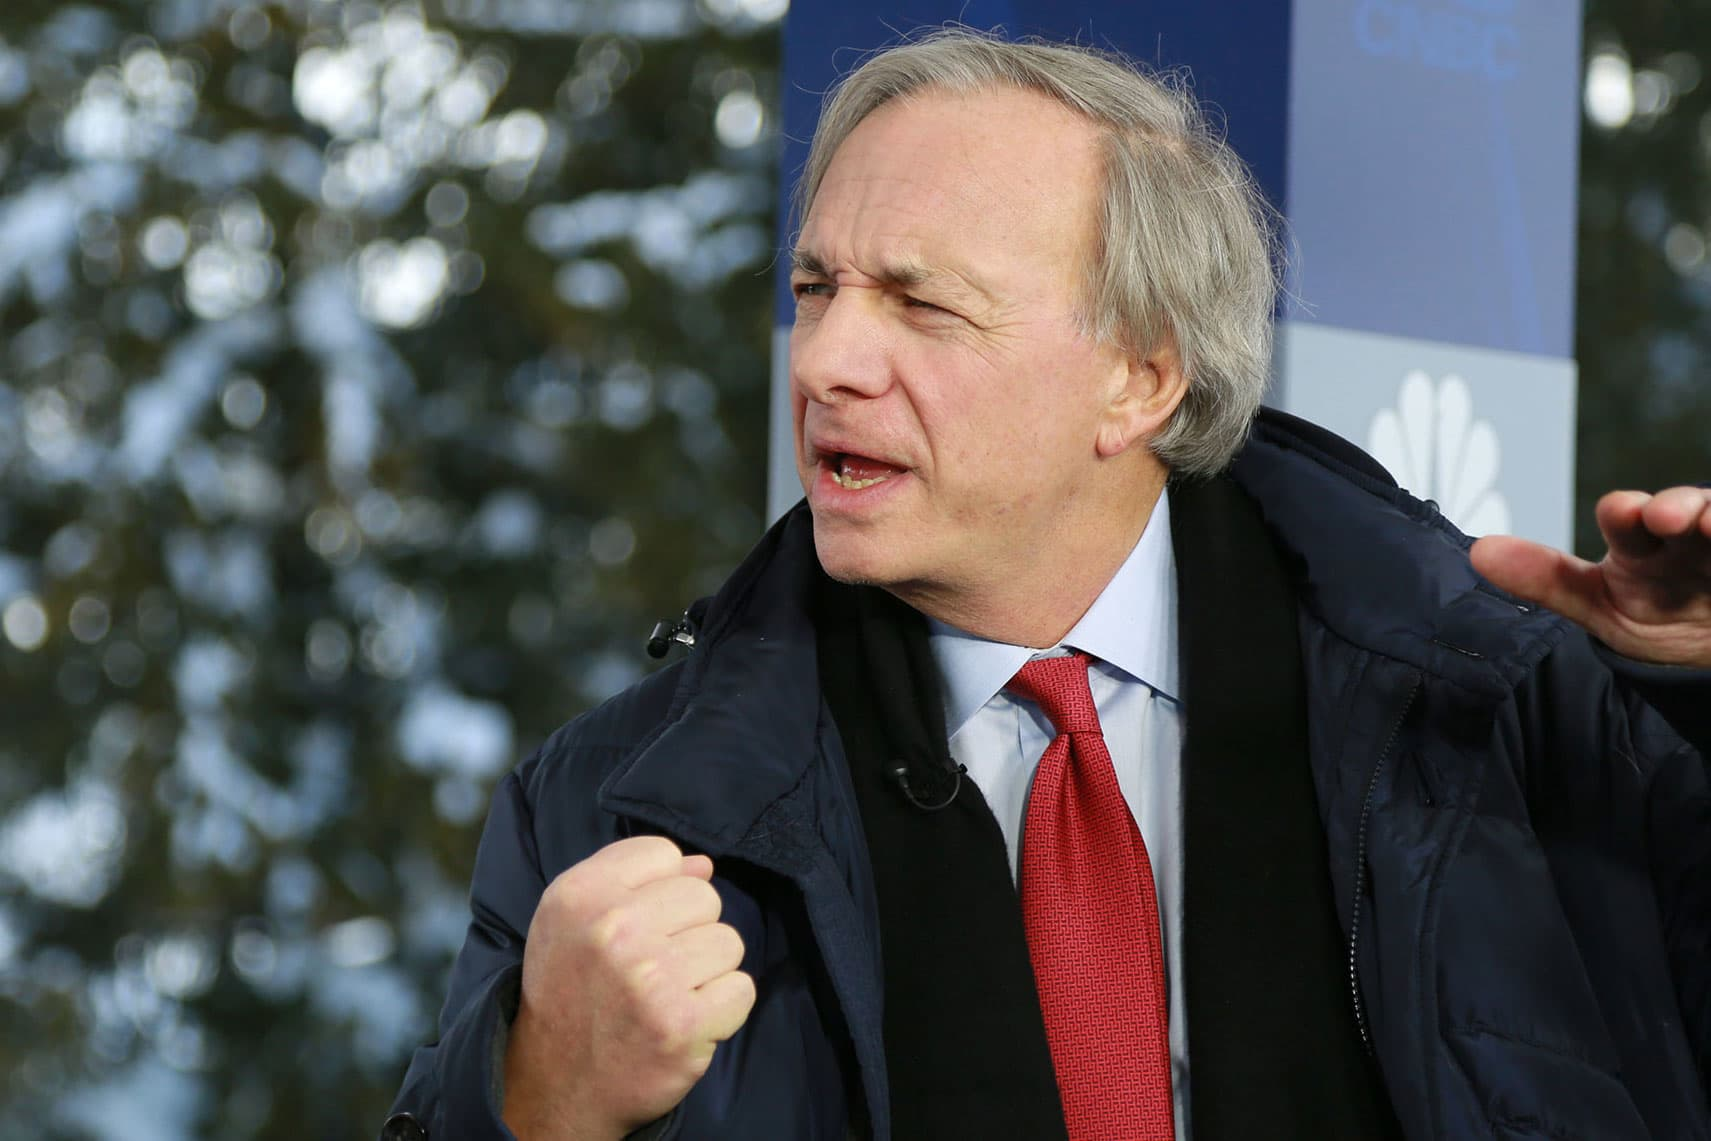 World's largest hedge fund is reportedly betting on a sell-off, but founder Ray Dalio denies it